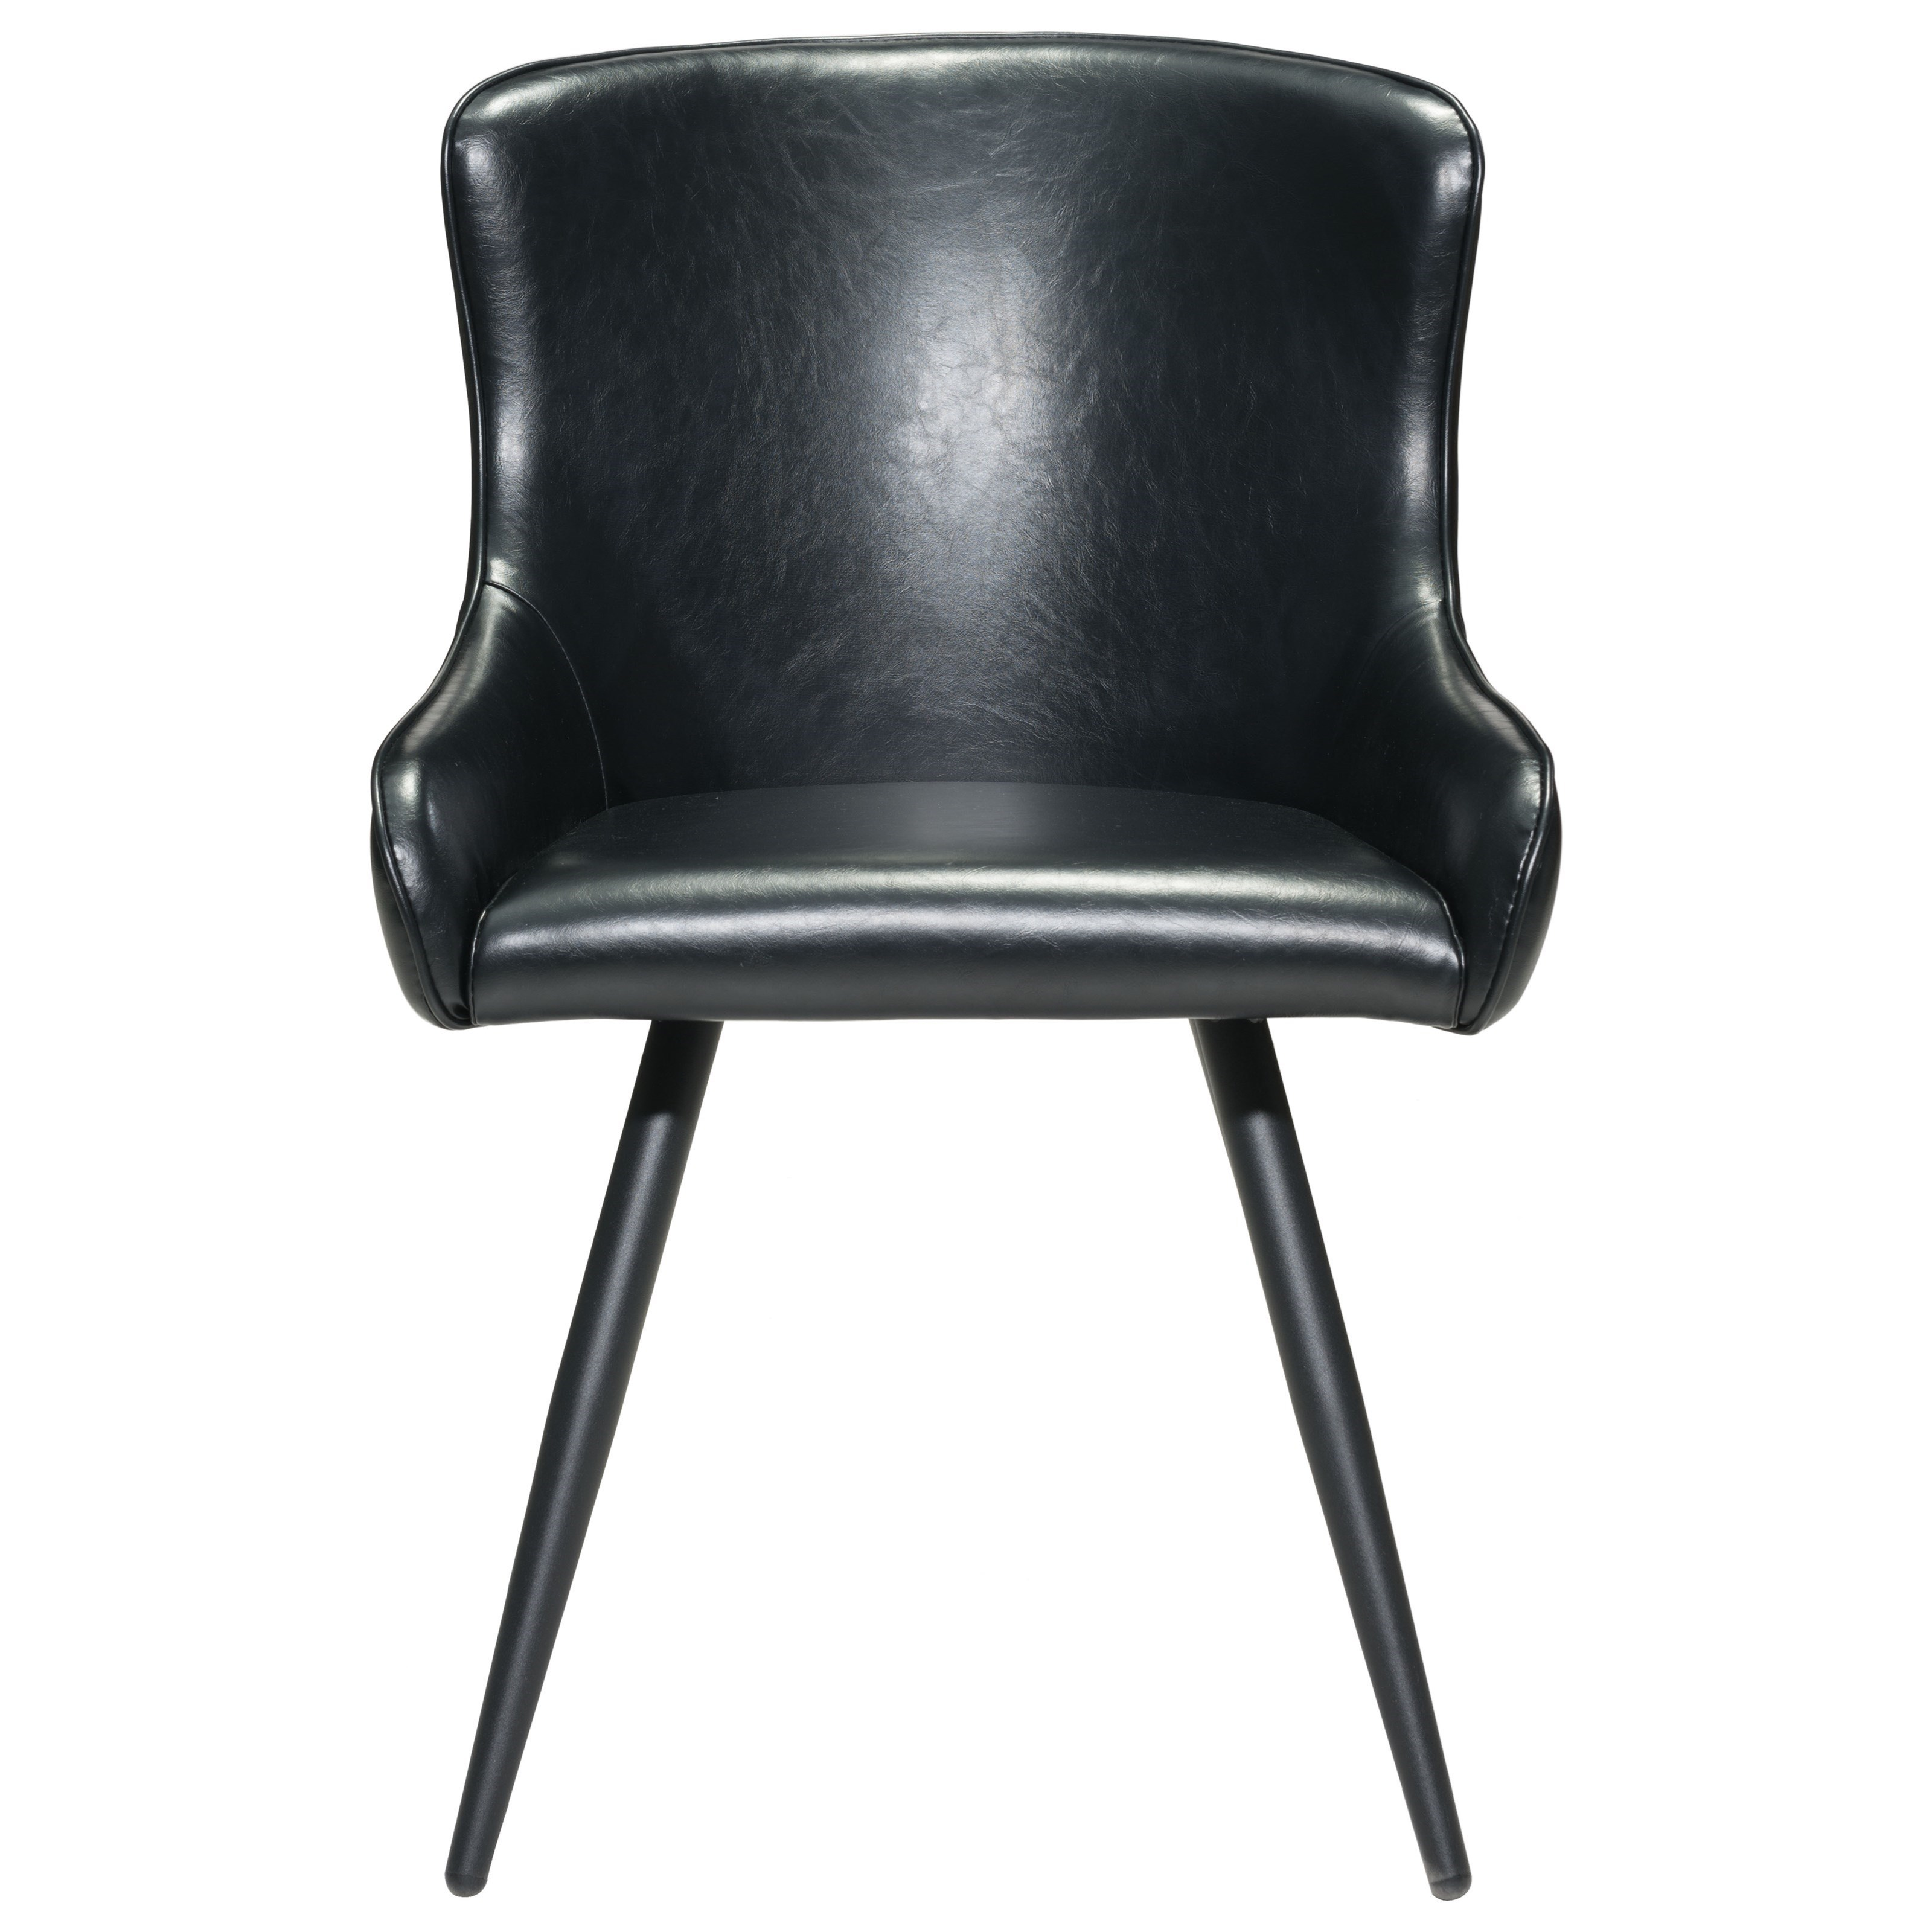 Dresden Dining Chair by Zuo at Nassau Furniture and Mattress